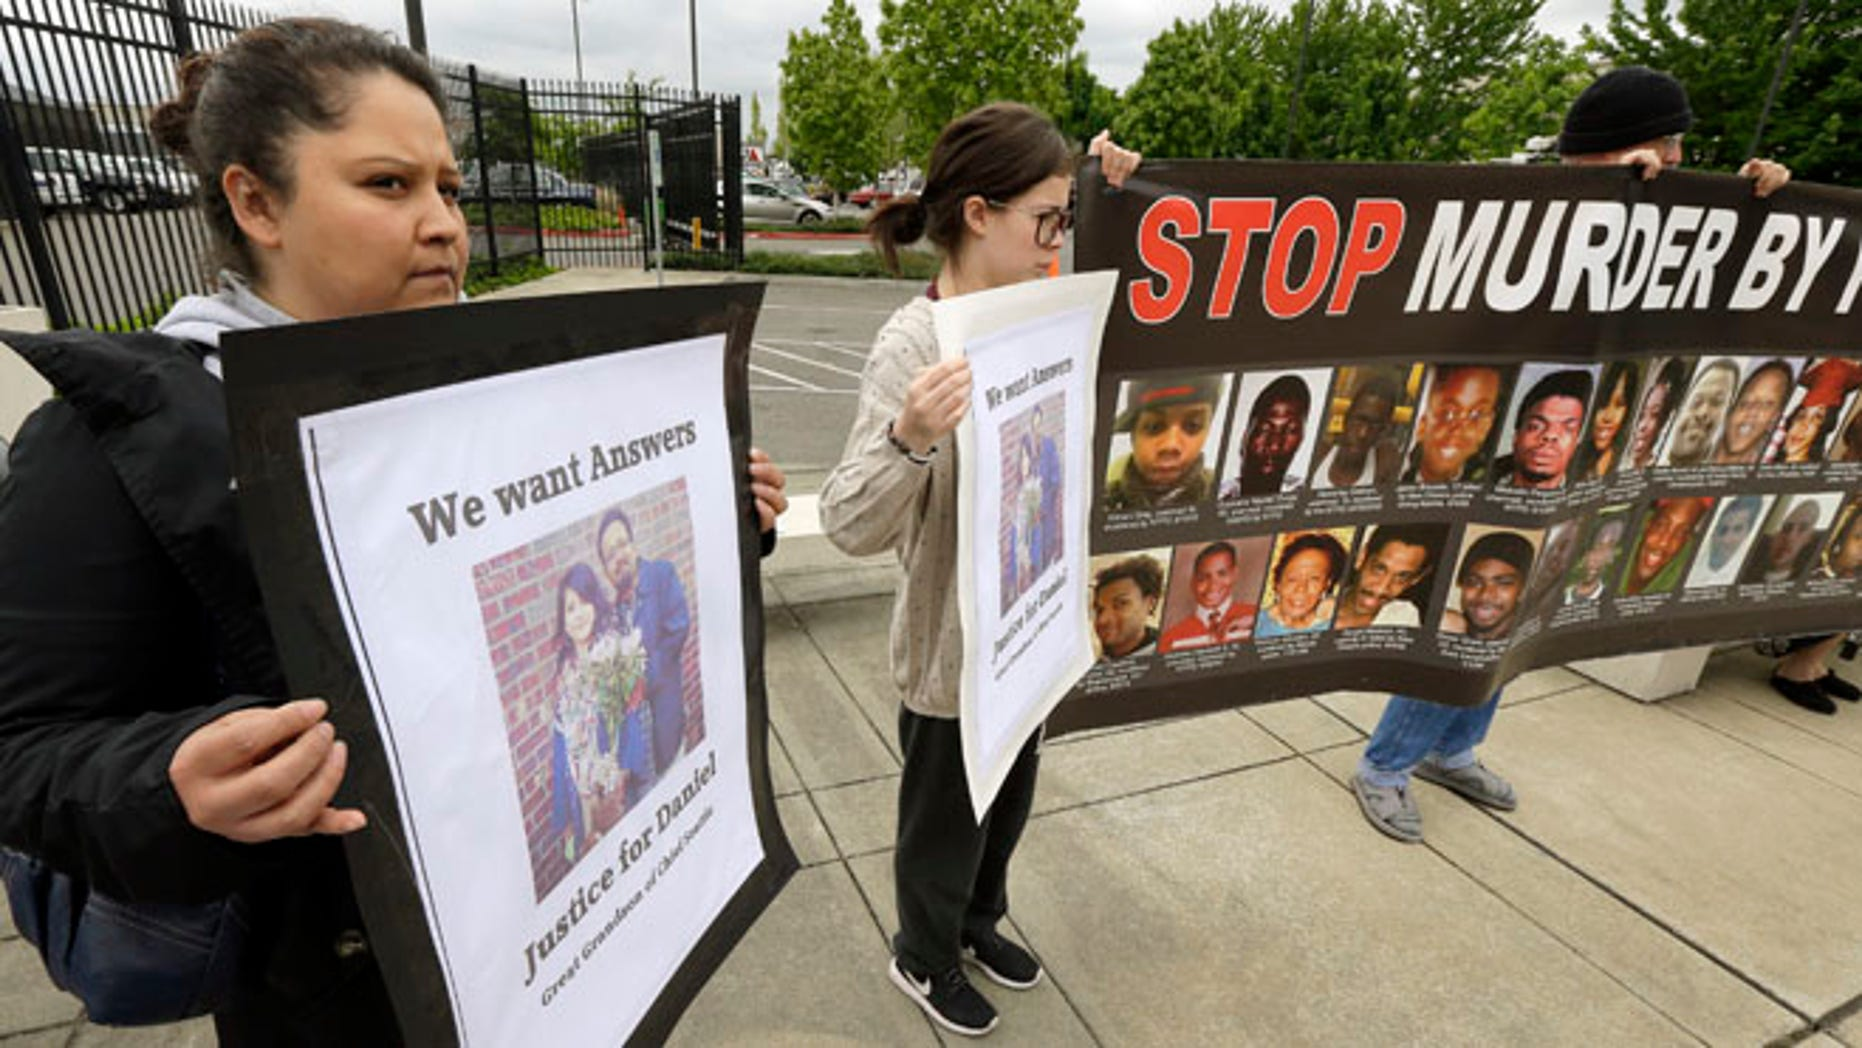 Lanna Covarrubias, left, the sister of Daniel Covarrubias, holds a sign Monday, May 11, 2015, as she stands with supporters outside police headquarters in Lakewood, Wash. The interim police chief in Lakewood says officers shot and killed Daniel Covarrubias in a lumber yard last month because he pointed a cell phone at them as though it were a gun. (AP Photo/Ted S. Warren)